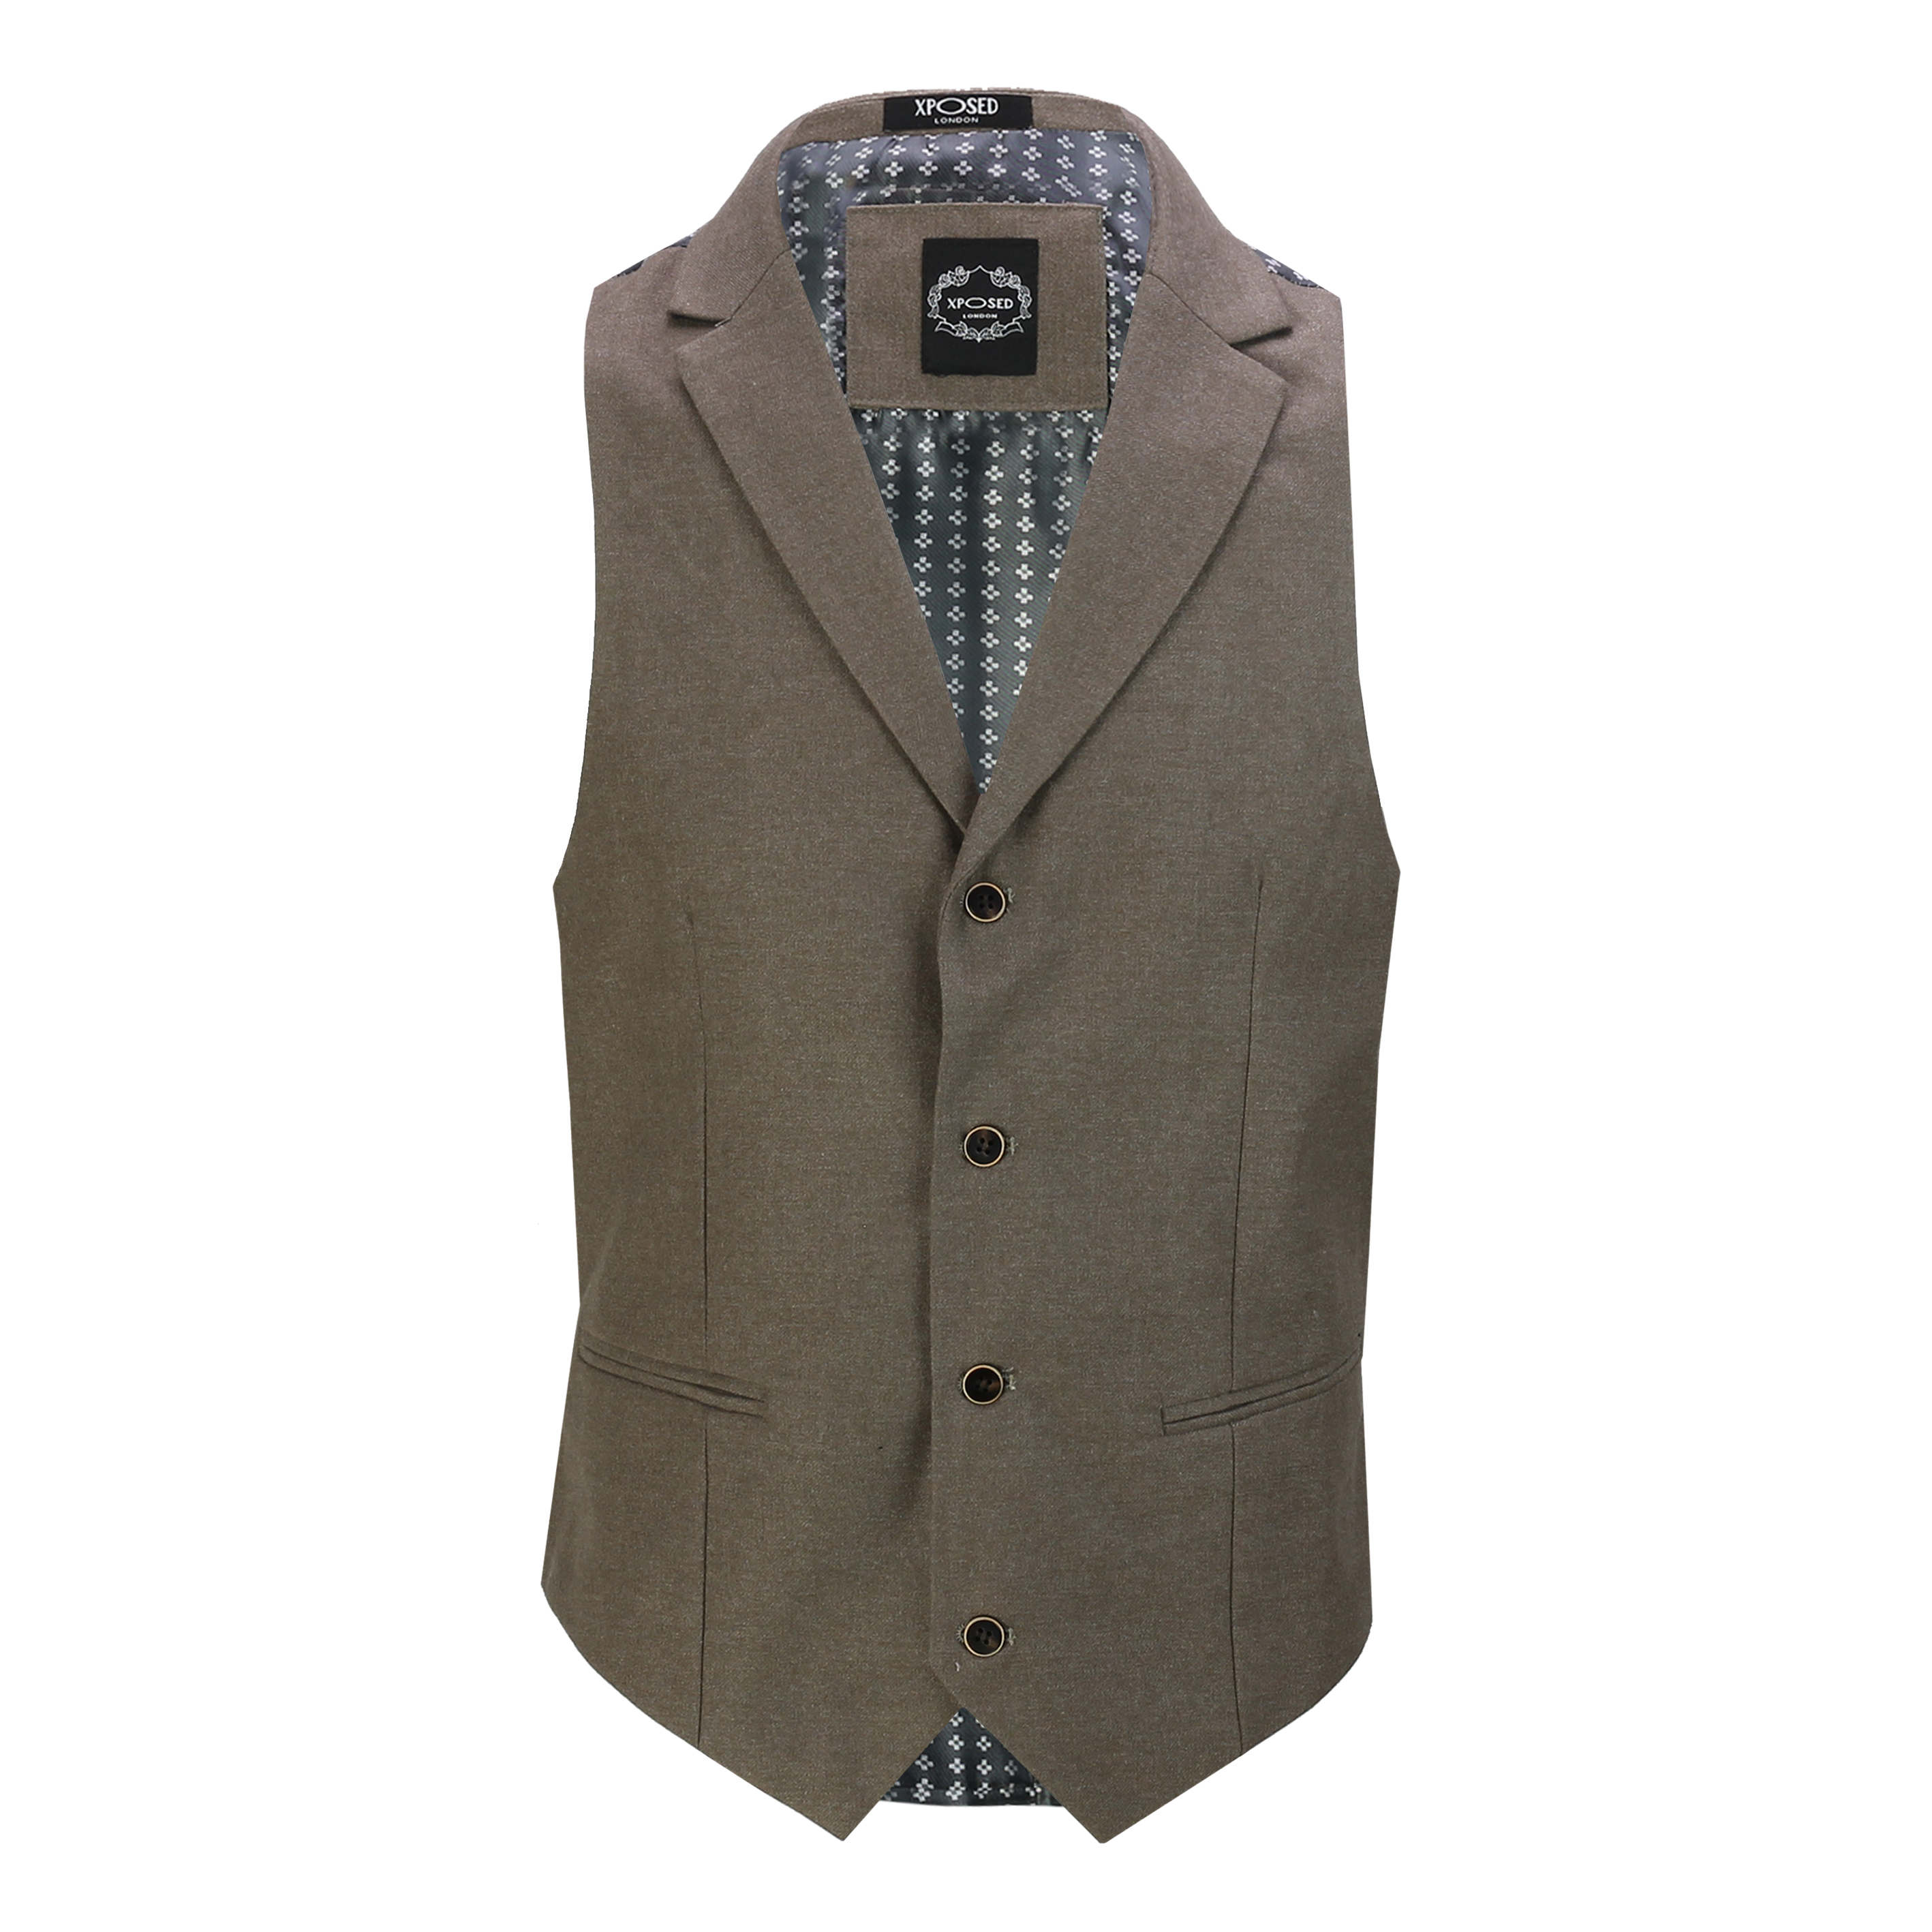 Mens-Classic-Collar-Waistcoat-Retro-Vintage-Style-Tailored-Fit-Smart-Formal-Vest thumbnail 9